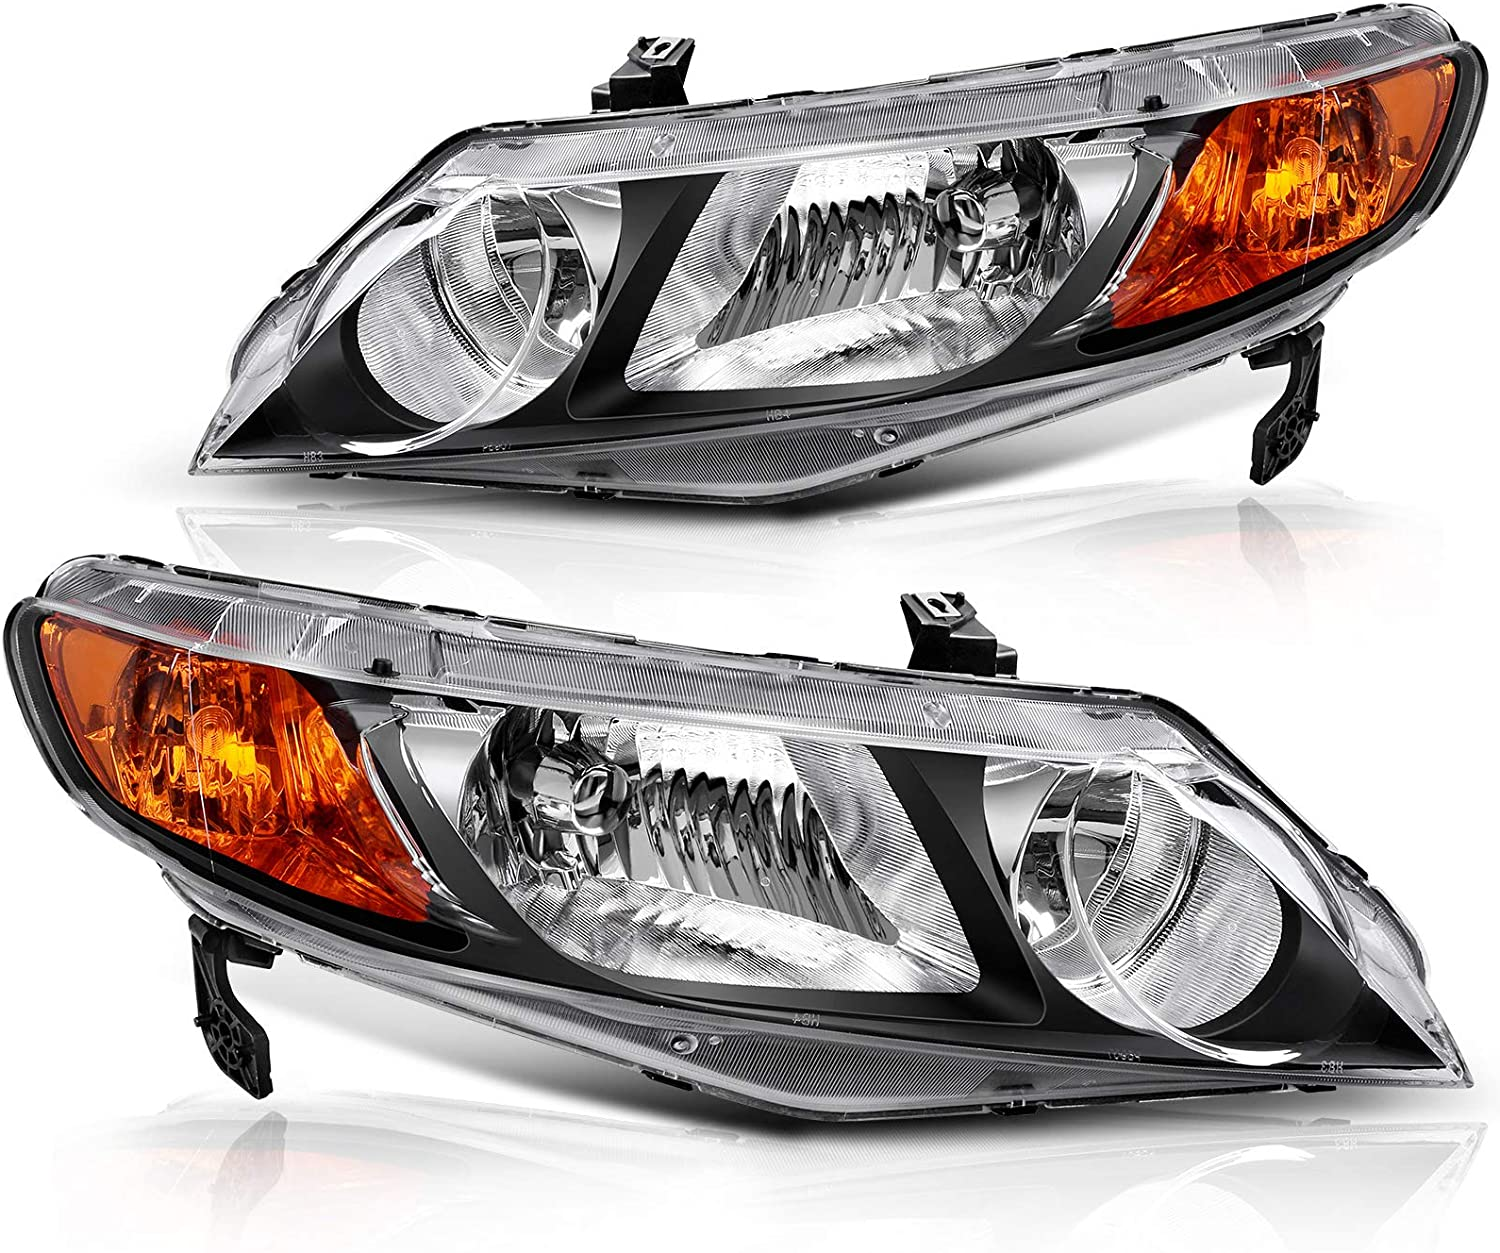 Chrome Housing Amber Reflector For 2006 2007 2008 2009 2010 2011 Honda Civic Sedan 4-Door Headlight Assembly Headlamp Replacement